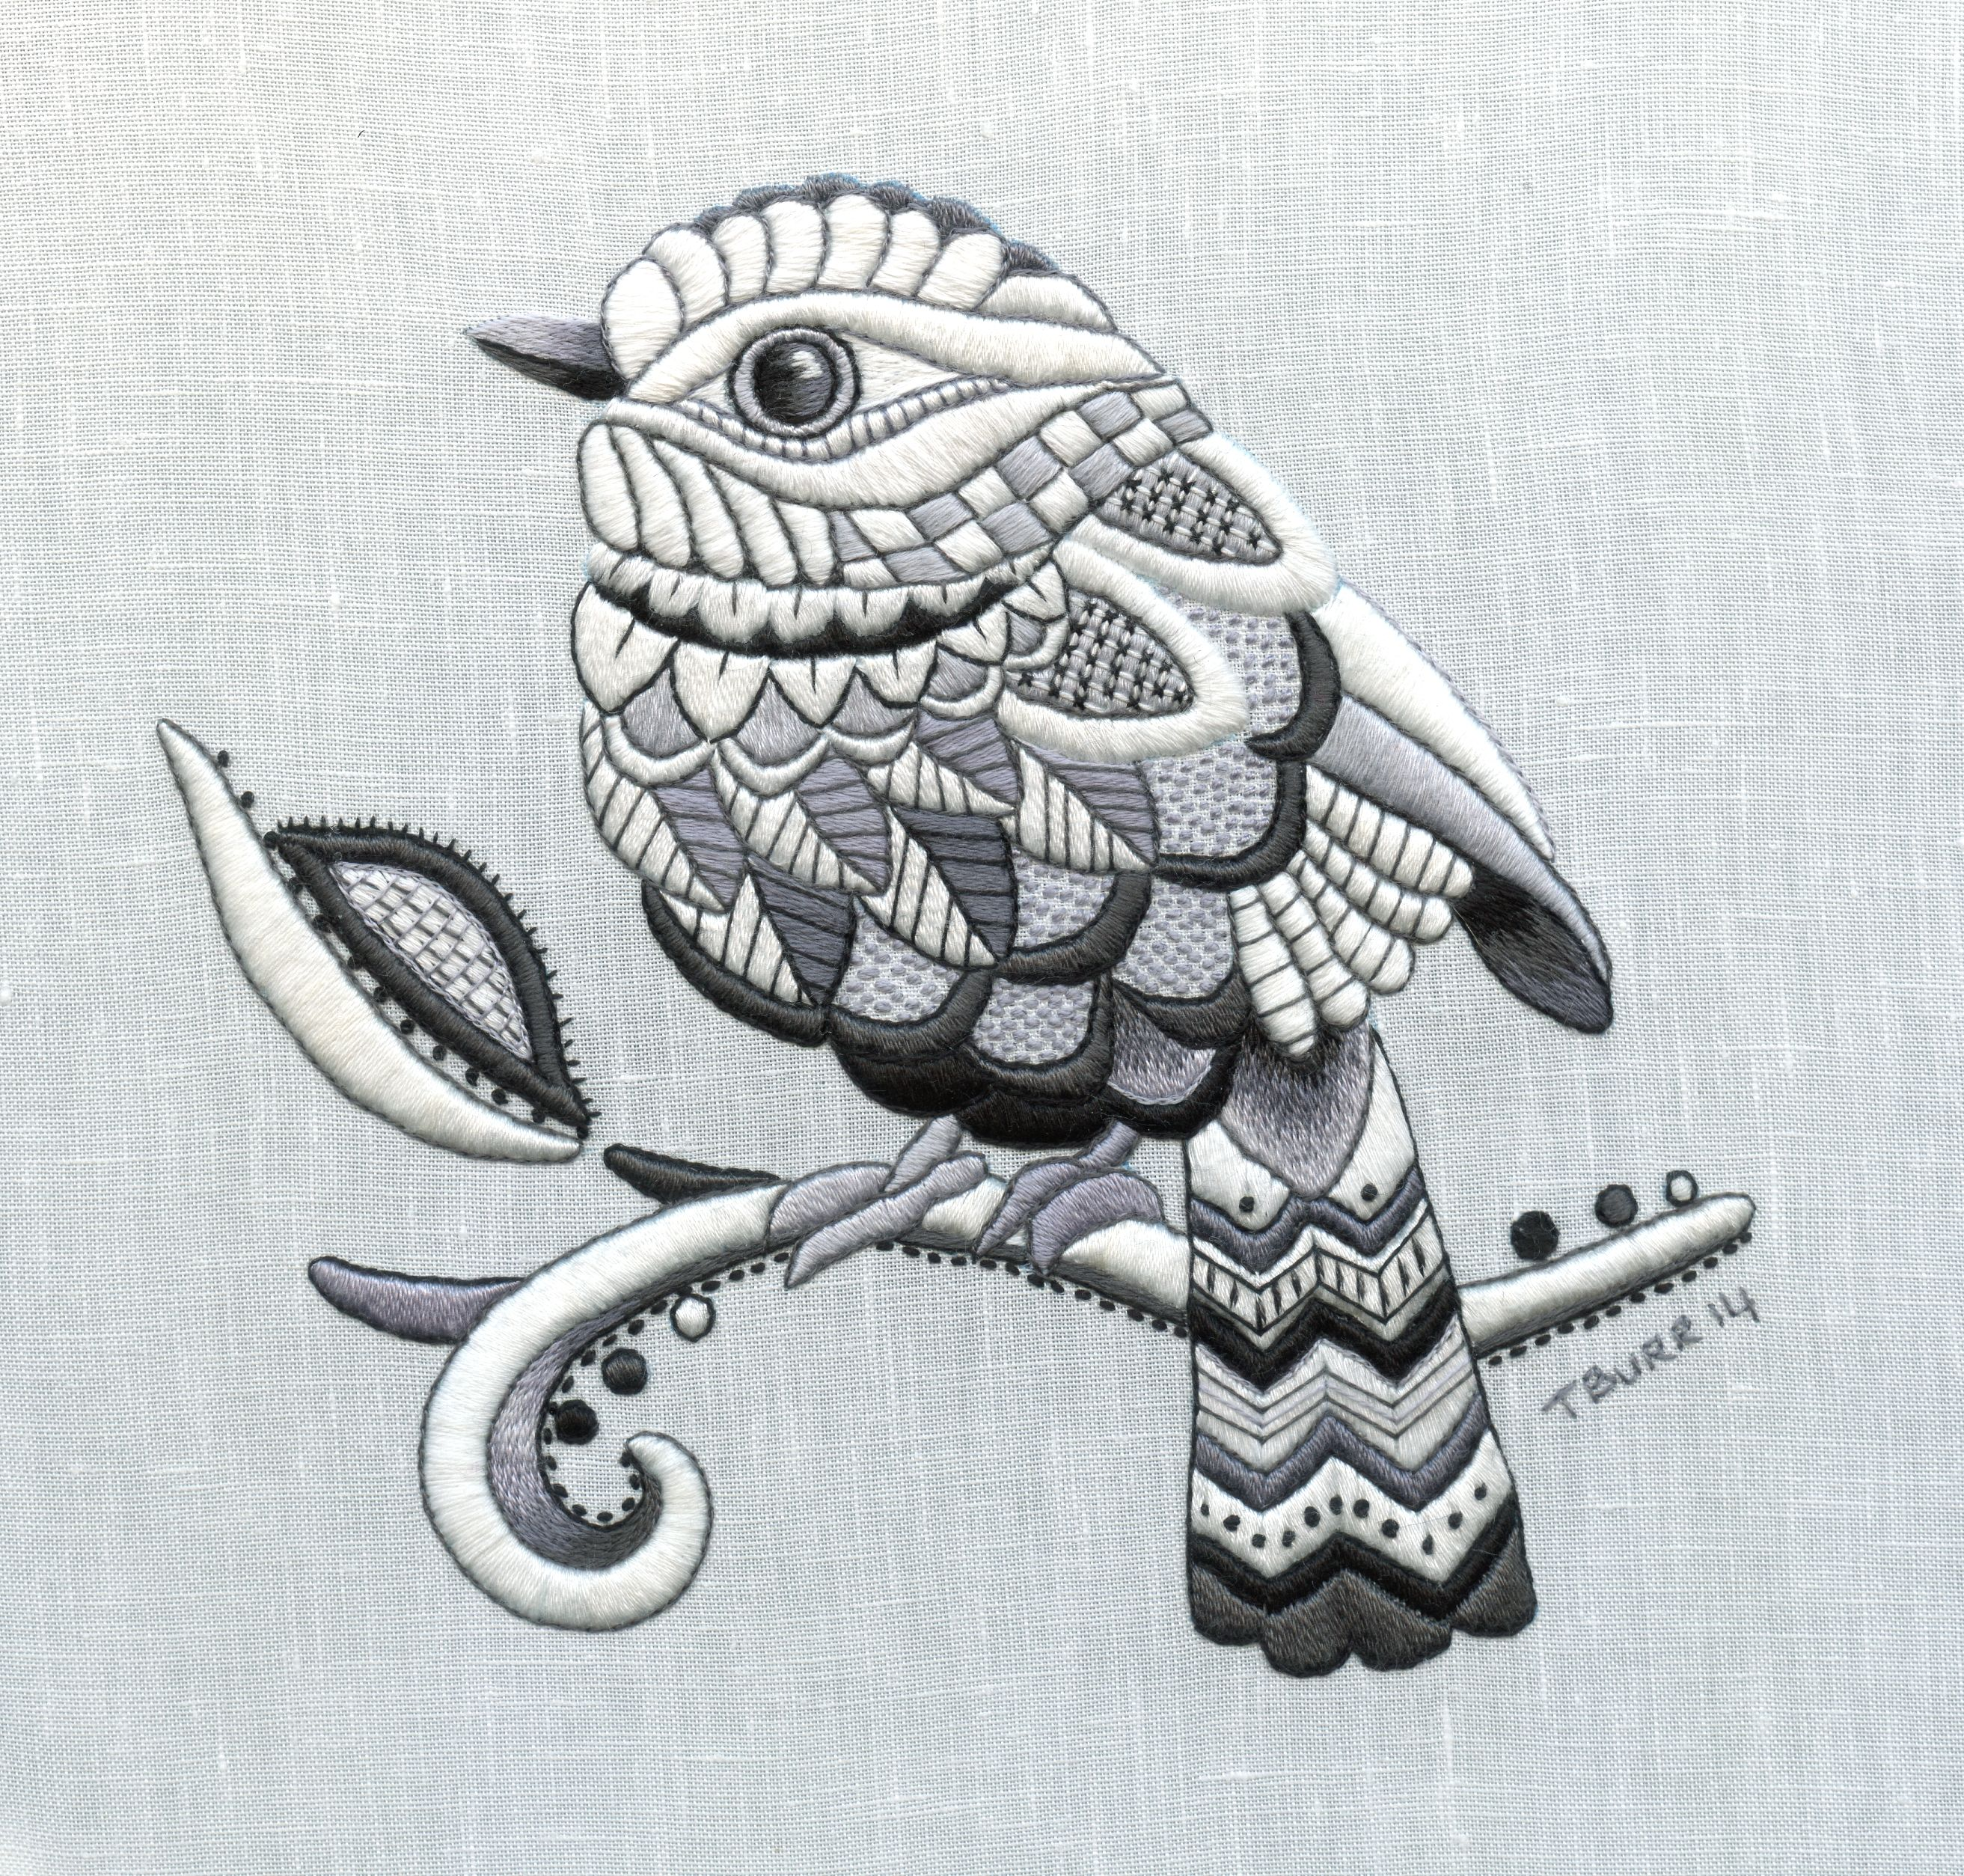 Zentangle Bird whitework embroidery stitched by Trish Burr UWC